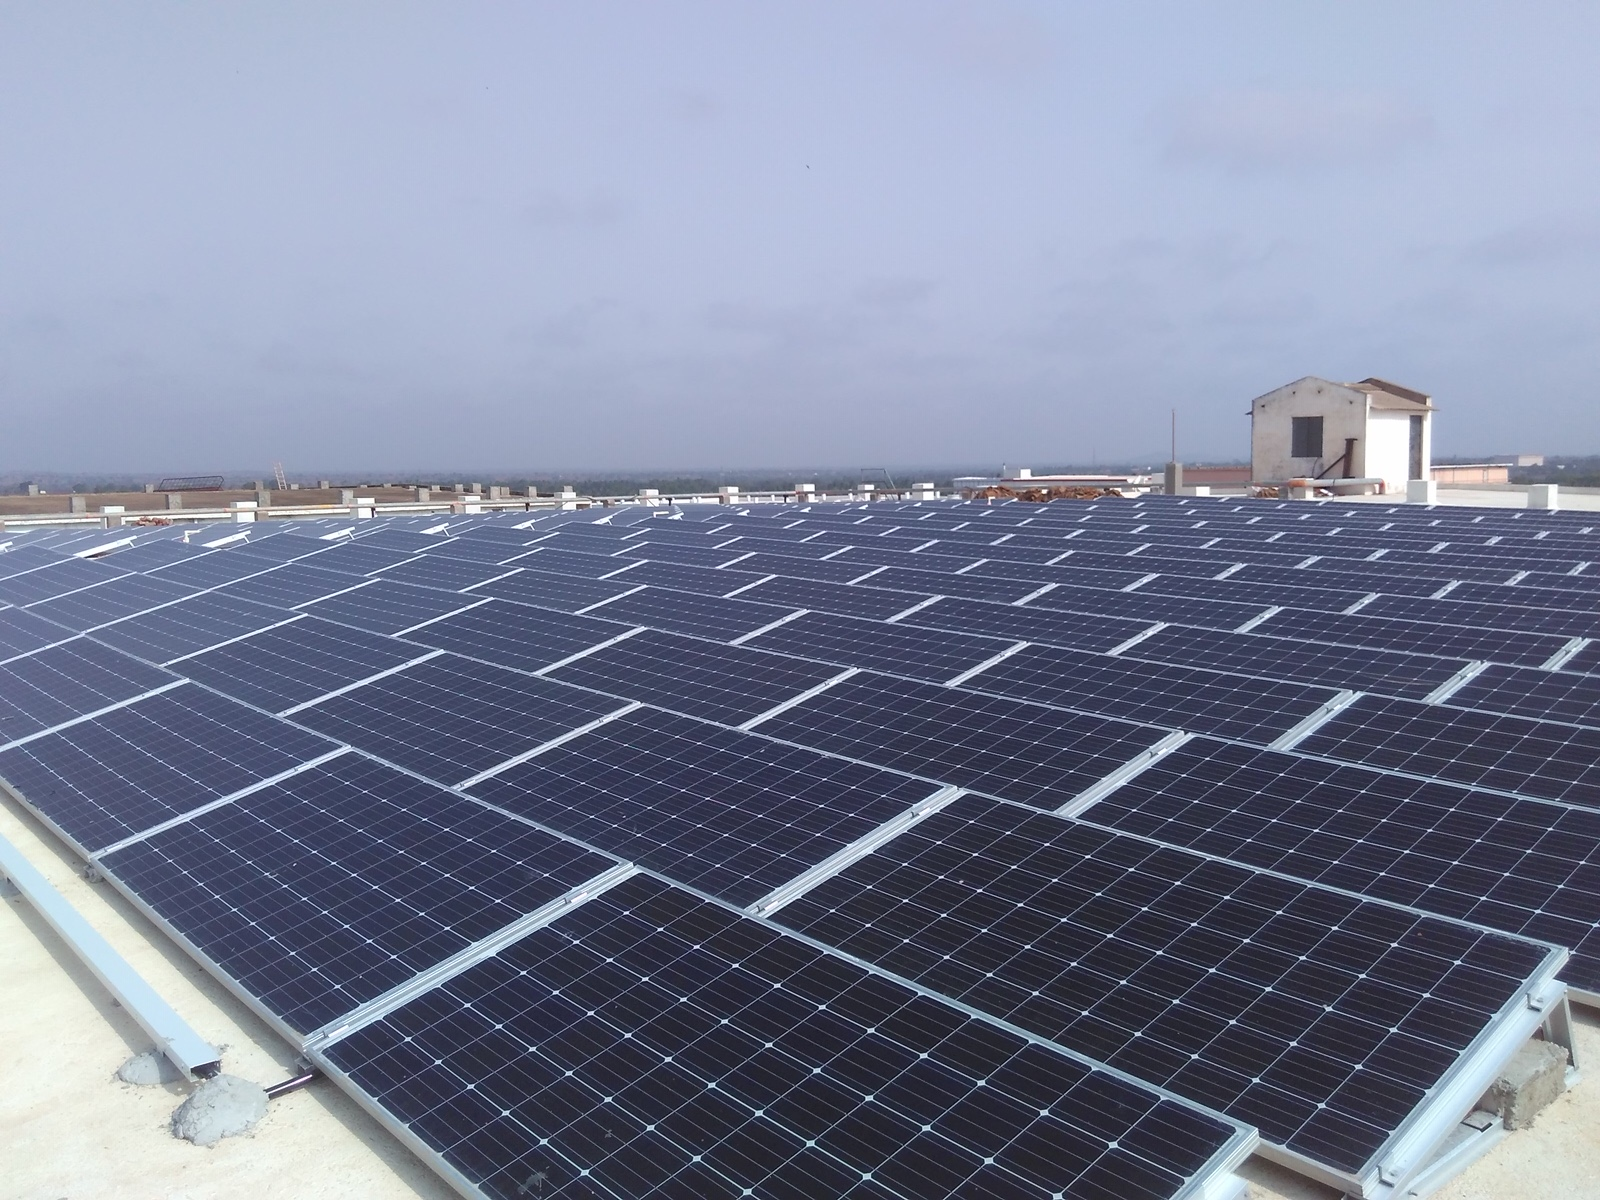 Orb Energy fosters rural economy with rooftop solar systems for cold storage companies in Byadgi, the chilli processing hub in Karnataka